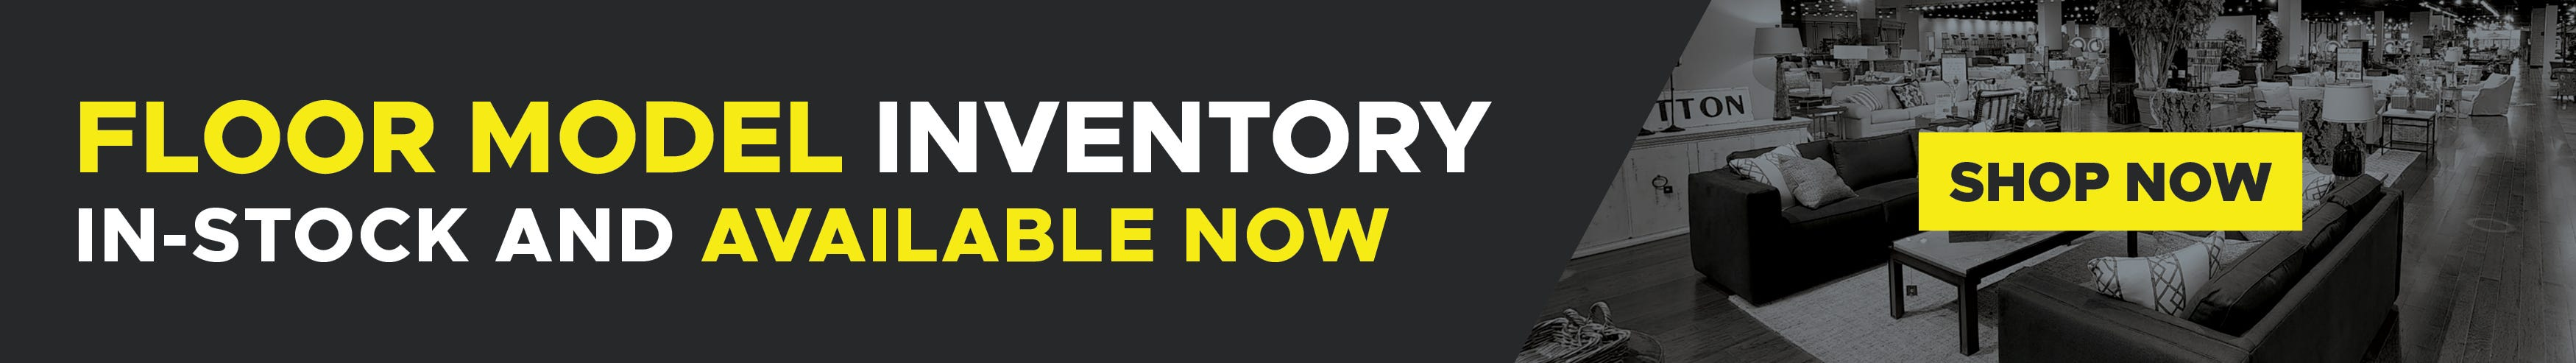 Floor model inventory. In-stock and available now. Shop now.